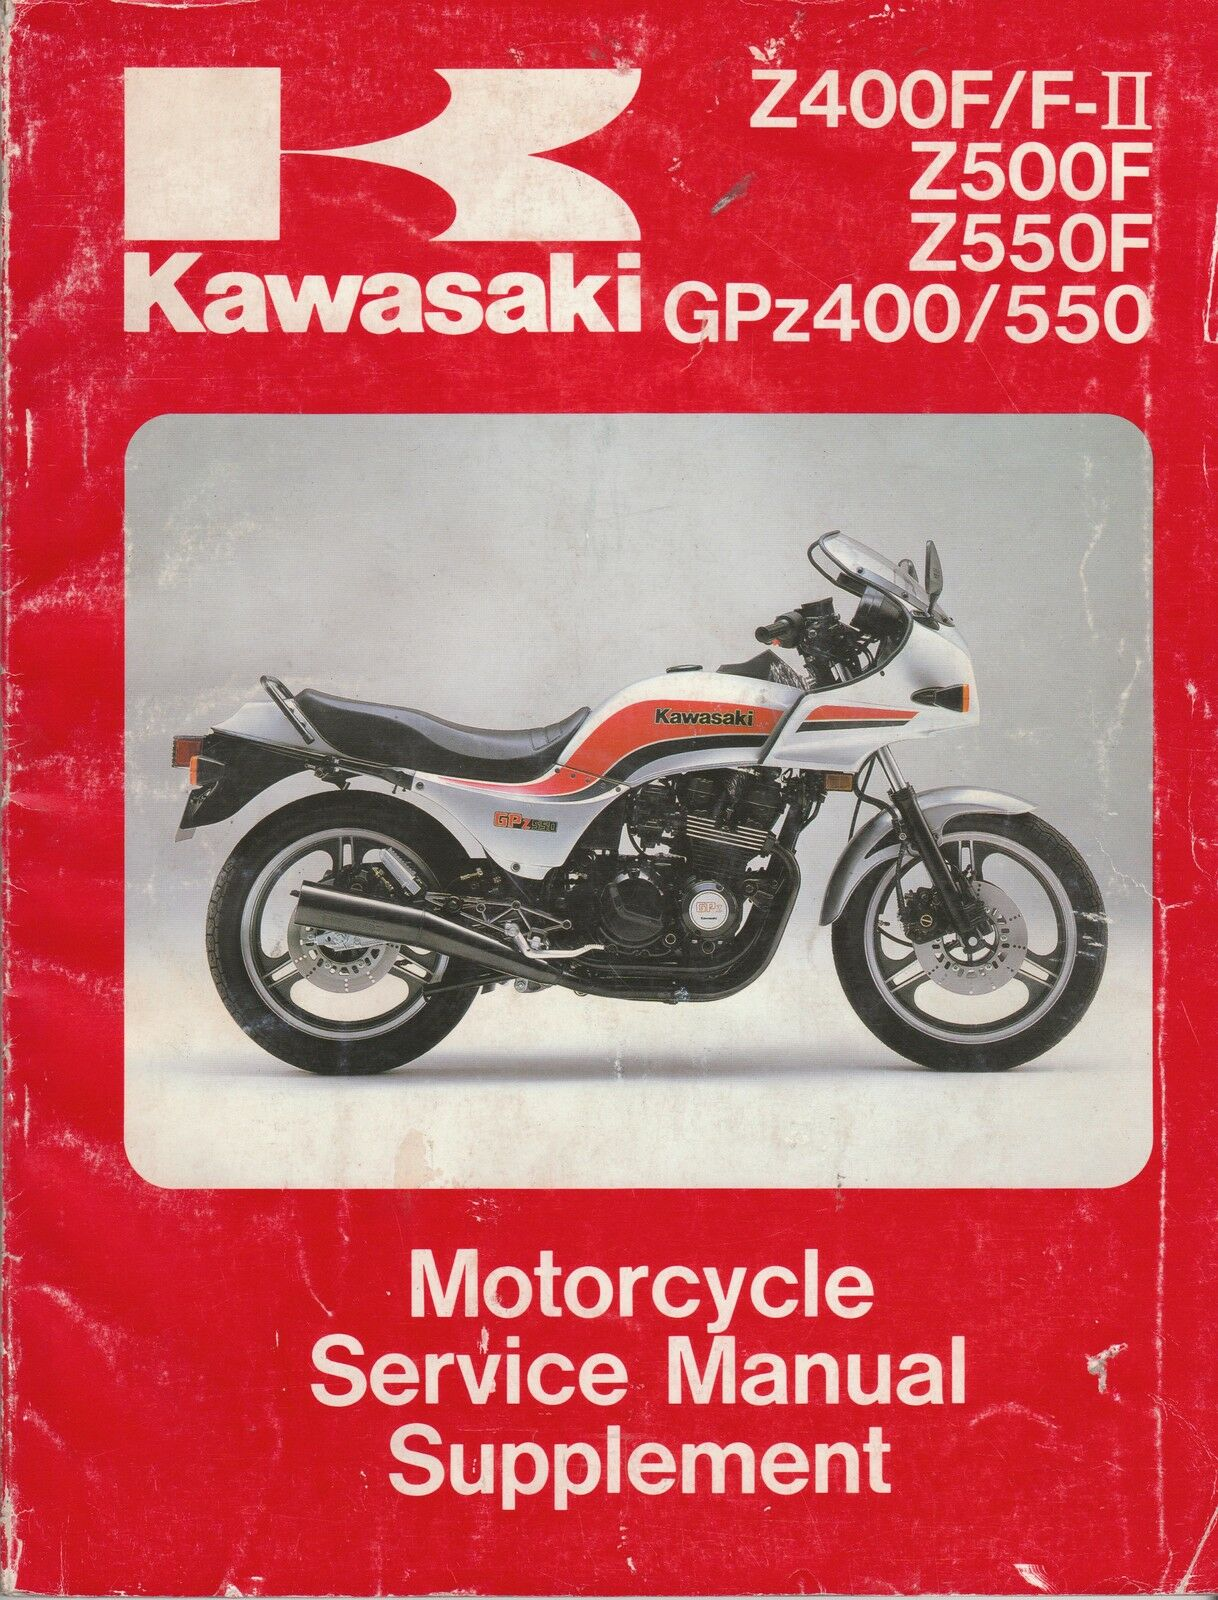 Kawasaki Z400F/F-2, Z500F, Z550F, GPz400/500 Service Manual 1 of 2Only 1  available See More